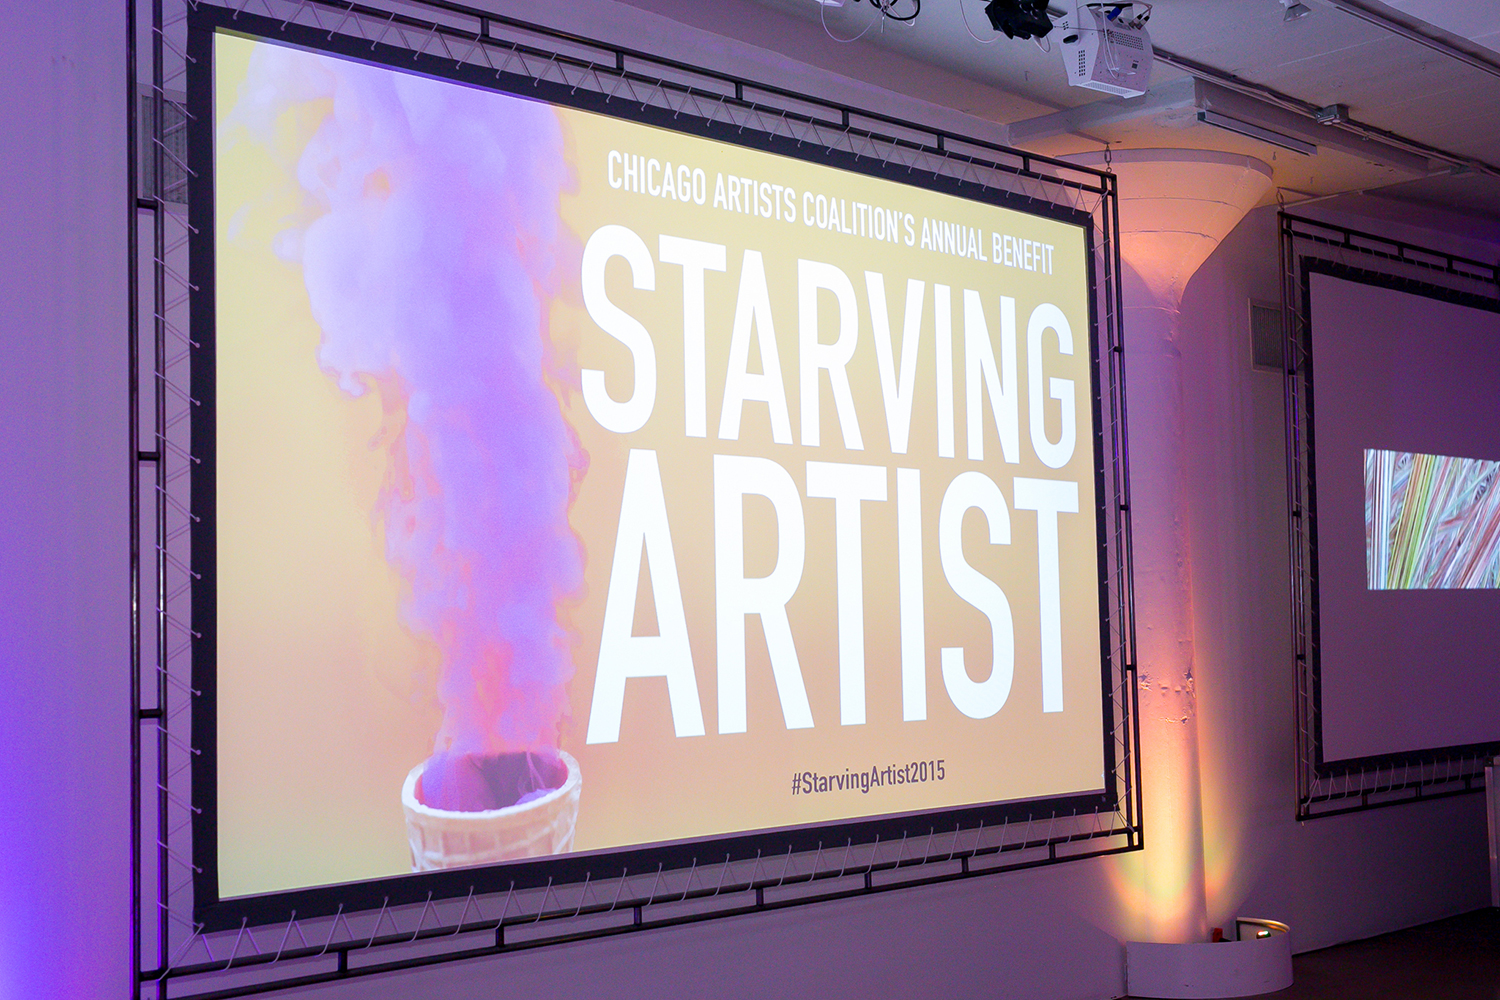 Starving Artist Chicago branding and graphic design.